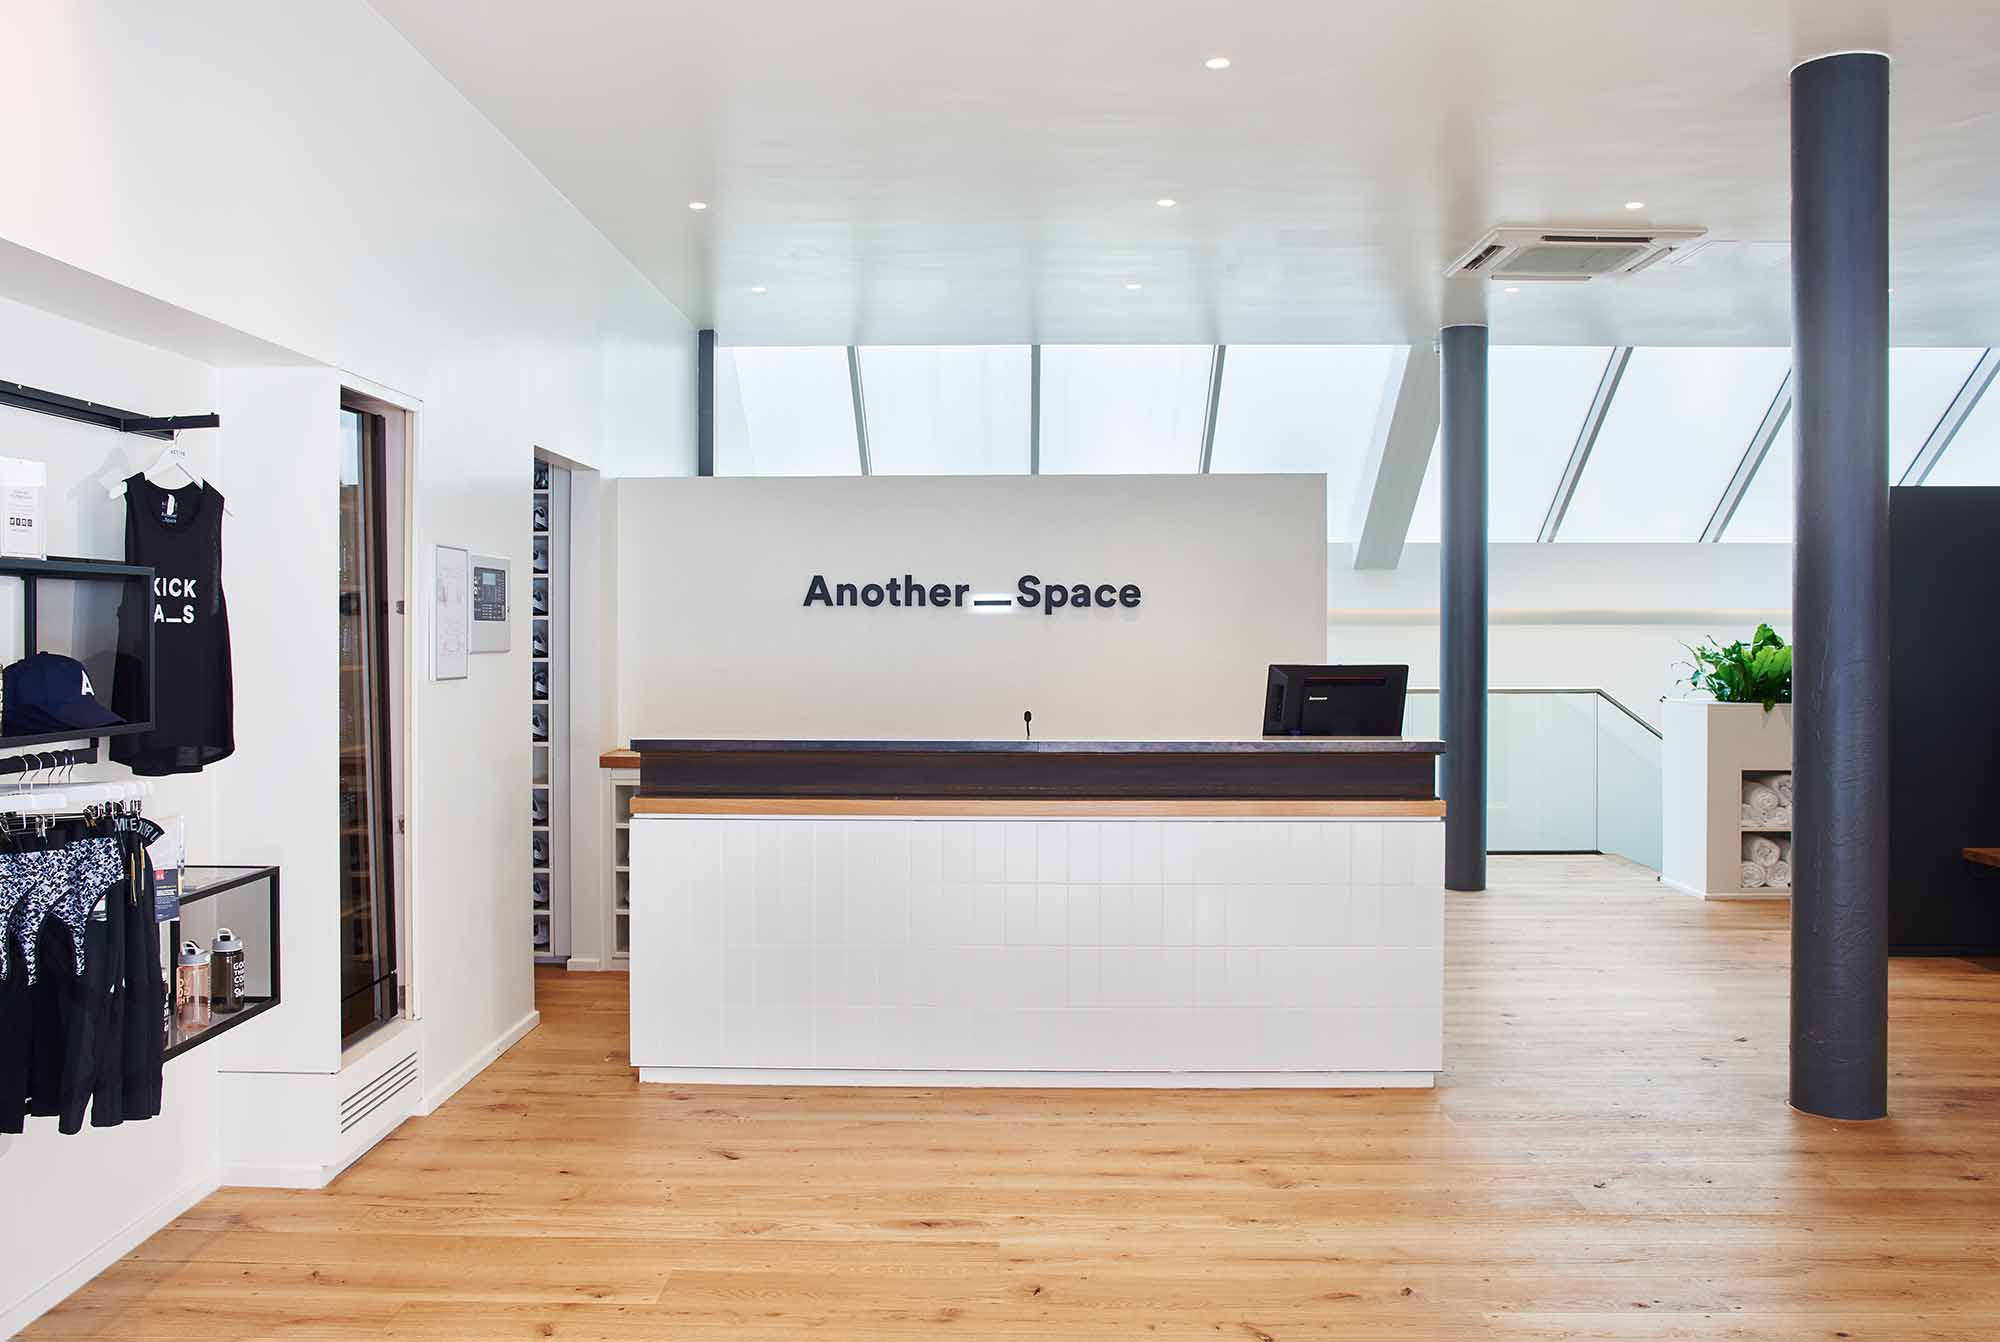 H-House-Another-Space-London-Another_Space_JMS-011.JPG